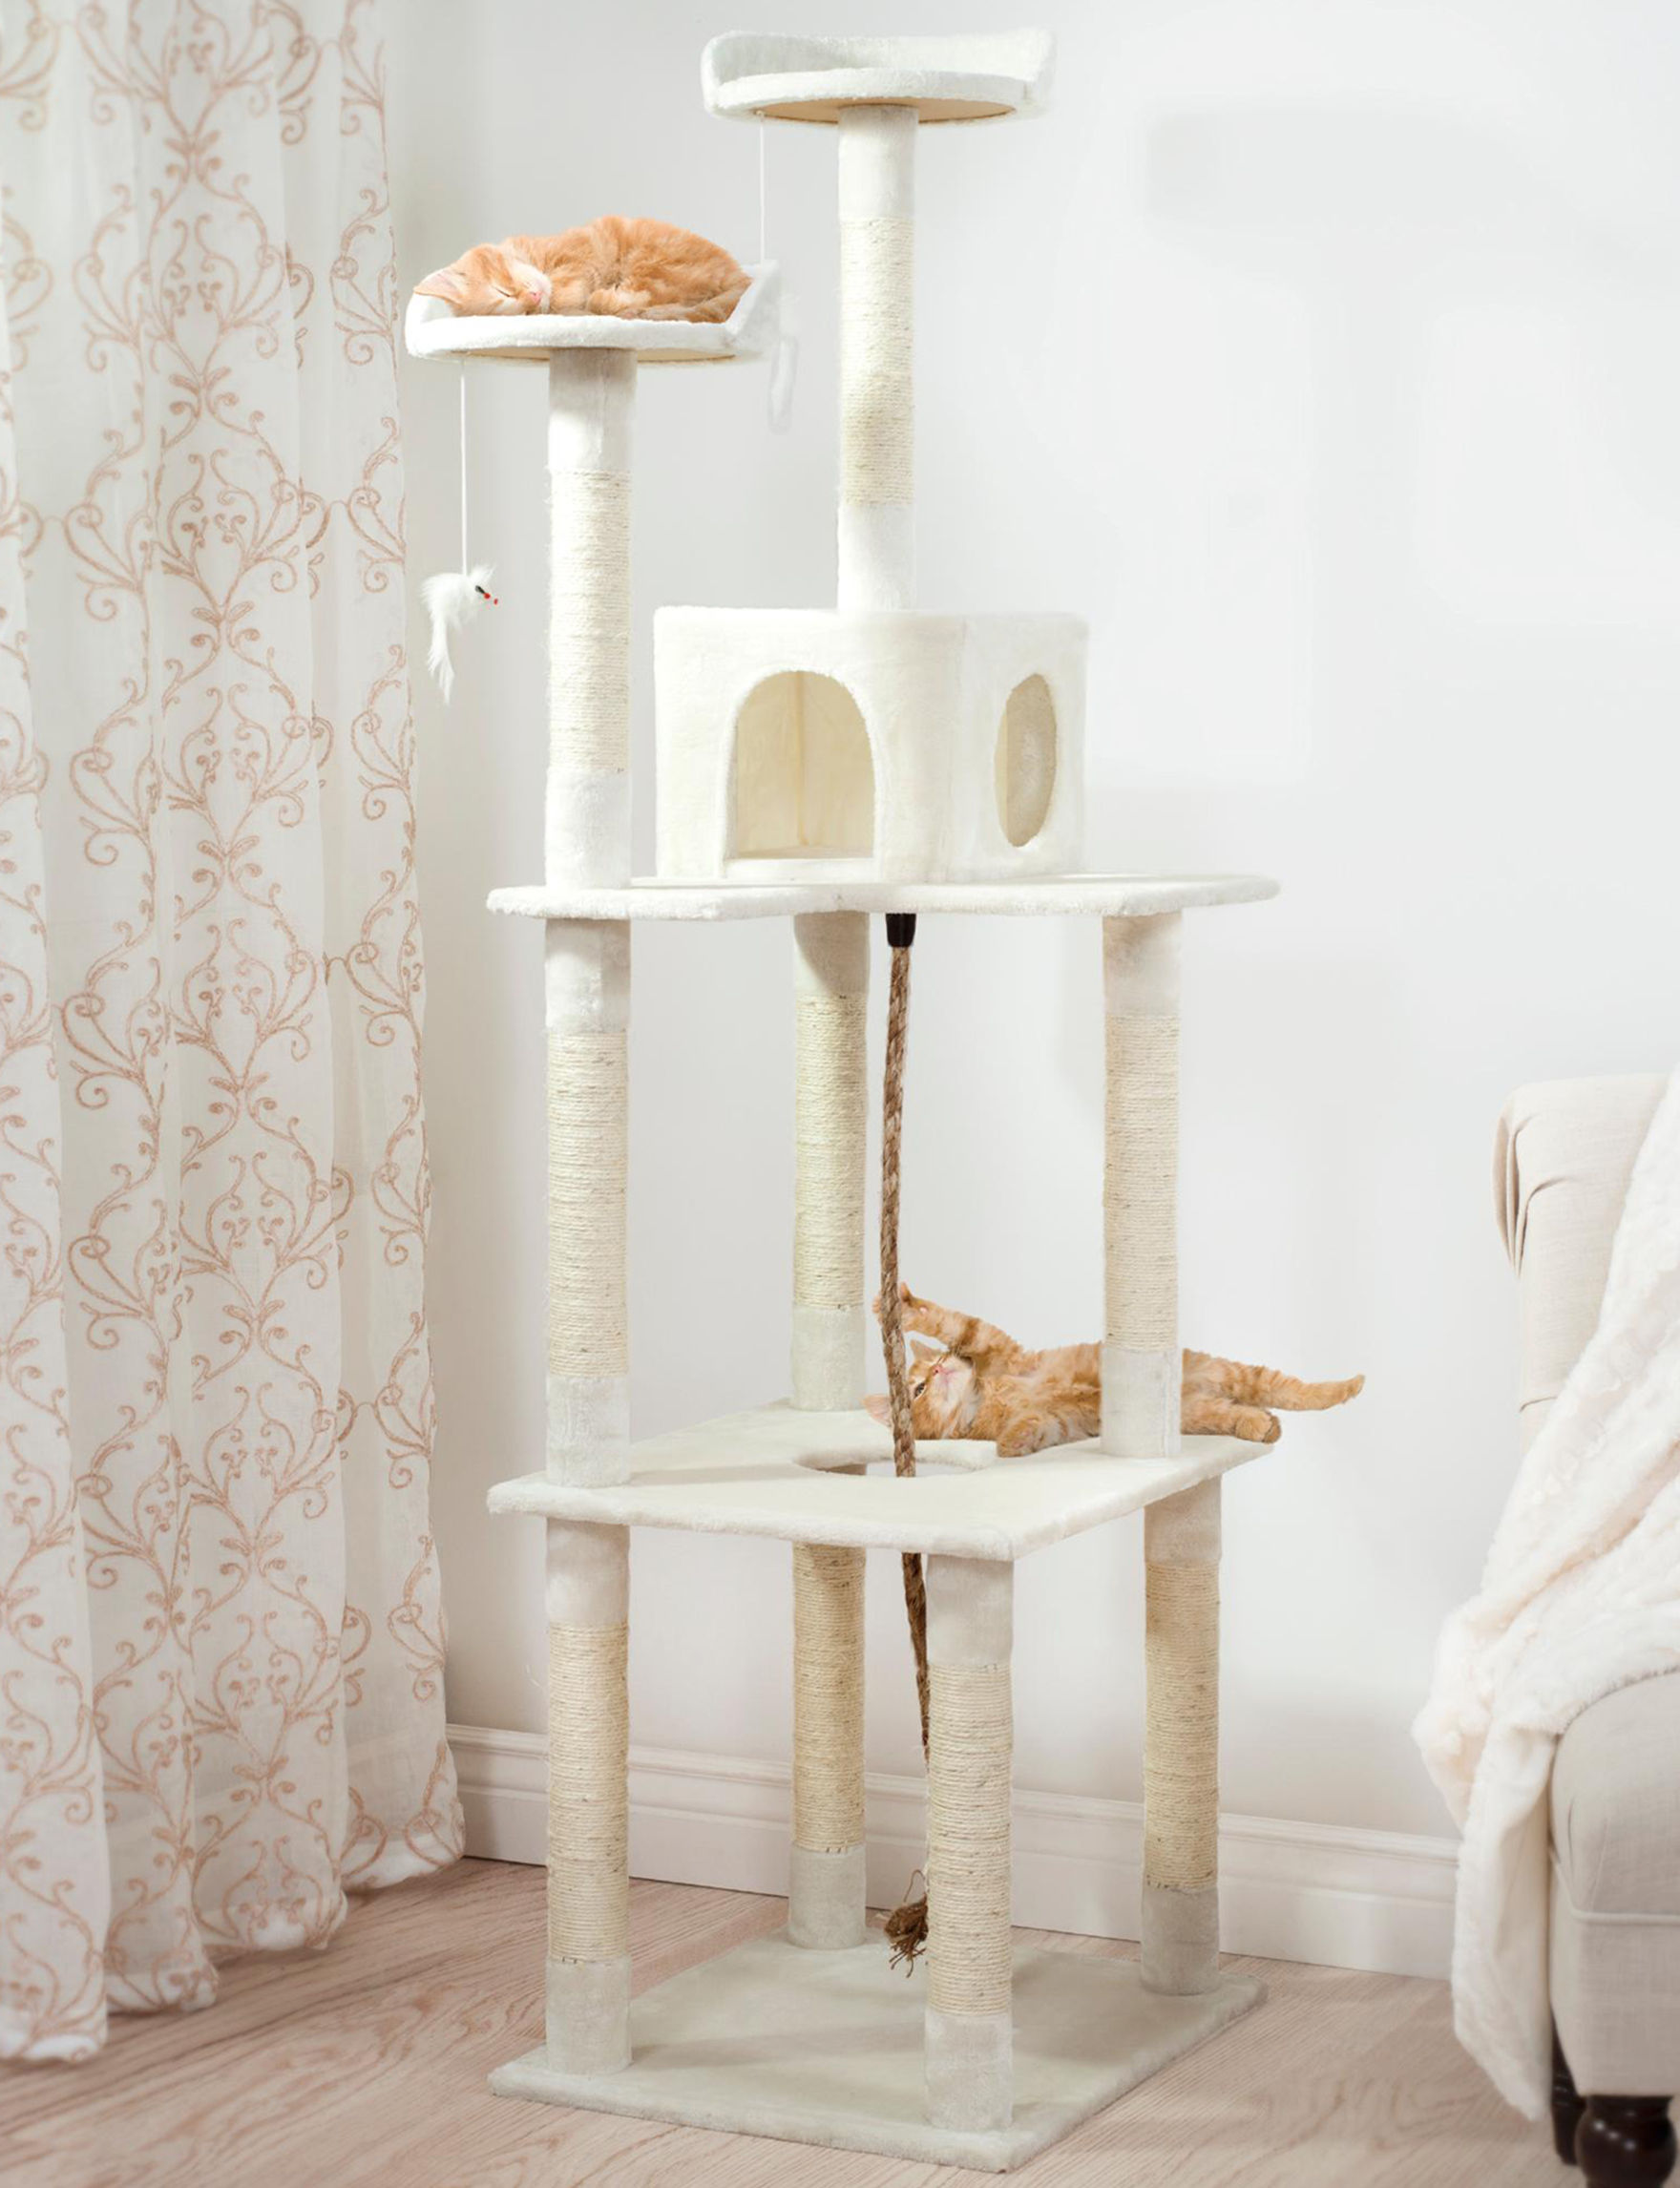 Paw White Pet Beds & Houses